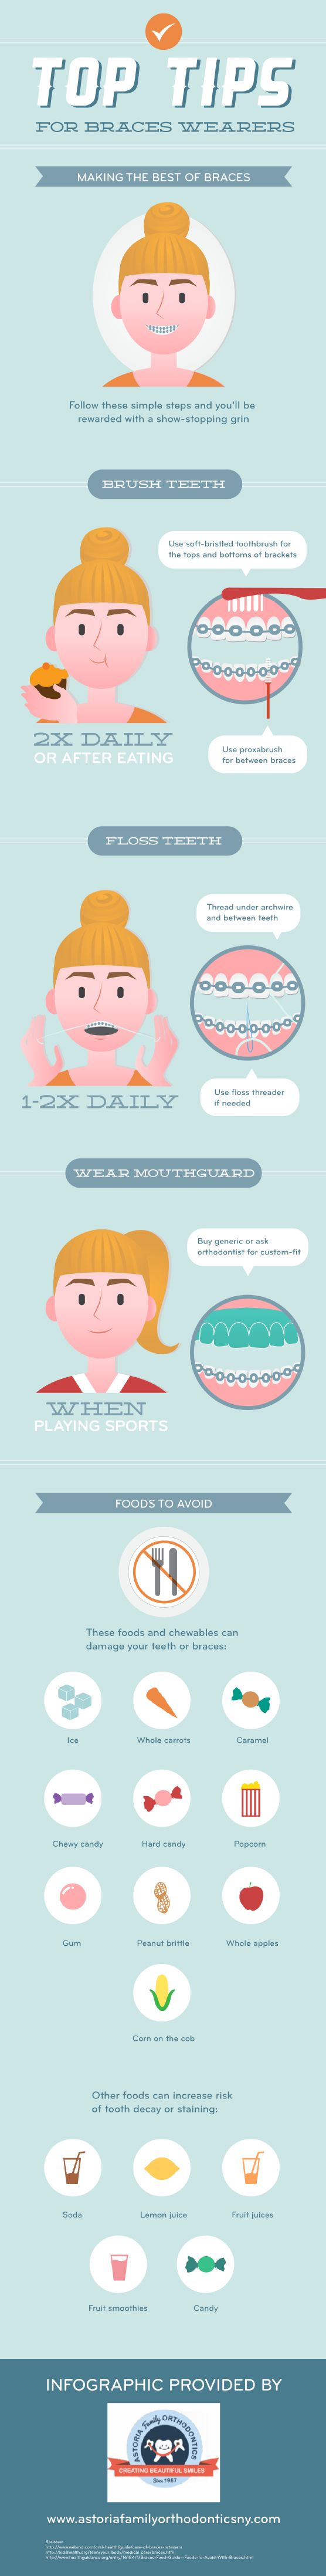 Soda, lemon juice, candy, fruit smoothies, and even fruit juices can stain your teeth and cause decay. Check out this infographic to learn how to clea